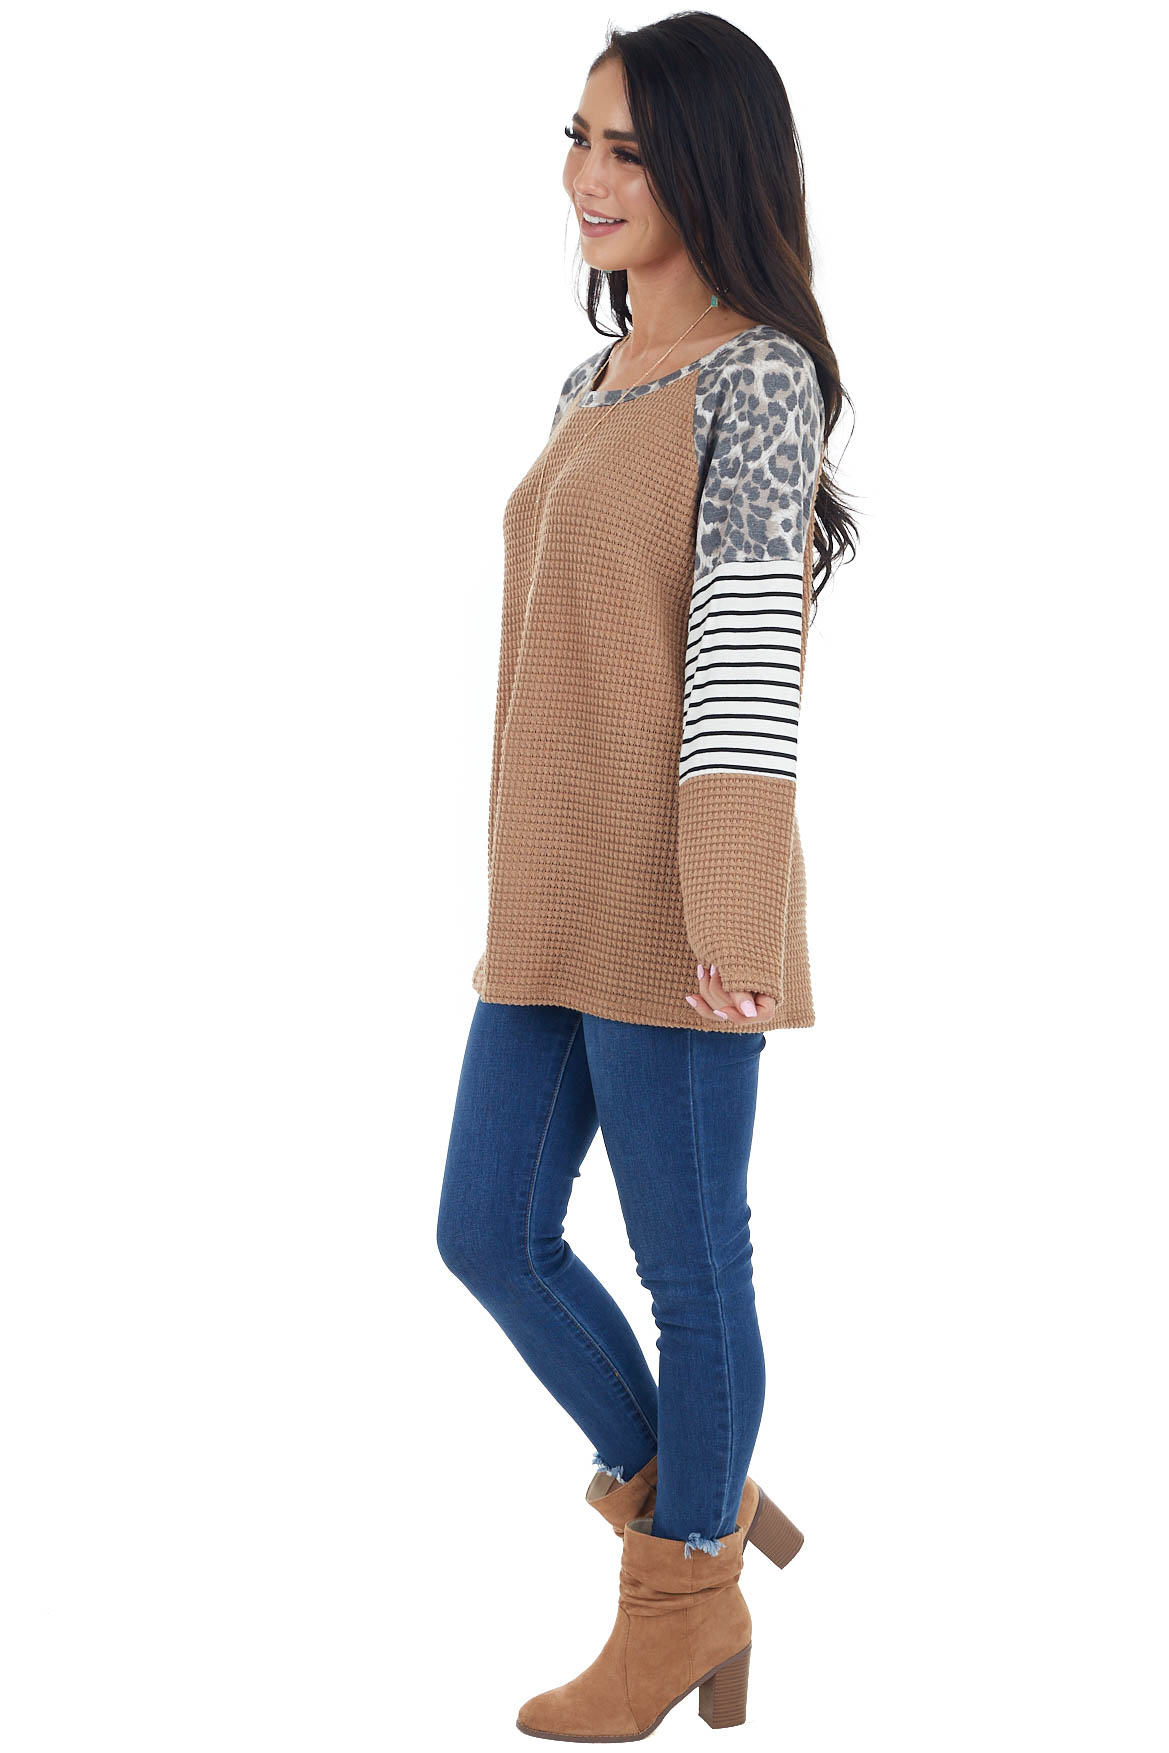 Camel Waffle Knit Top with Striped and Leopard Print Contrast